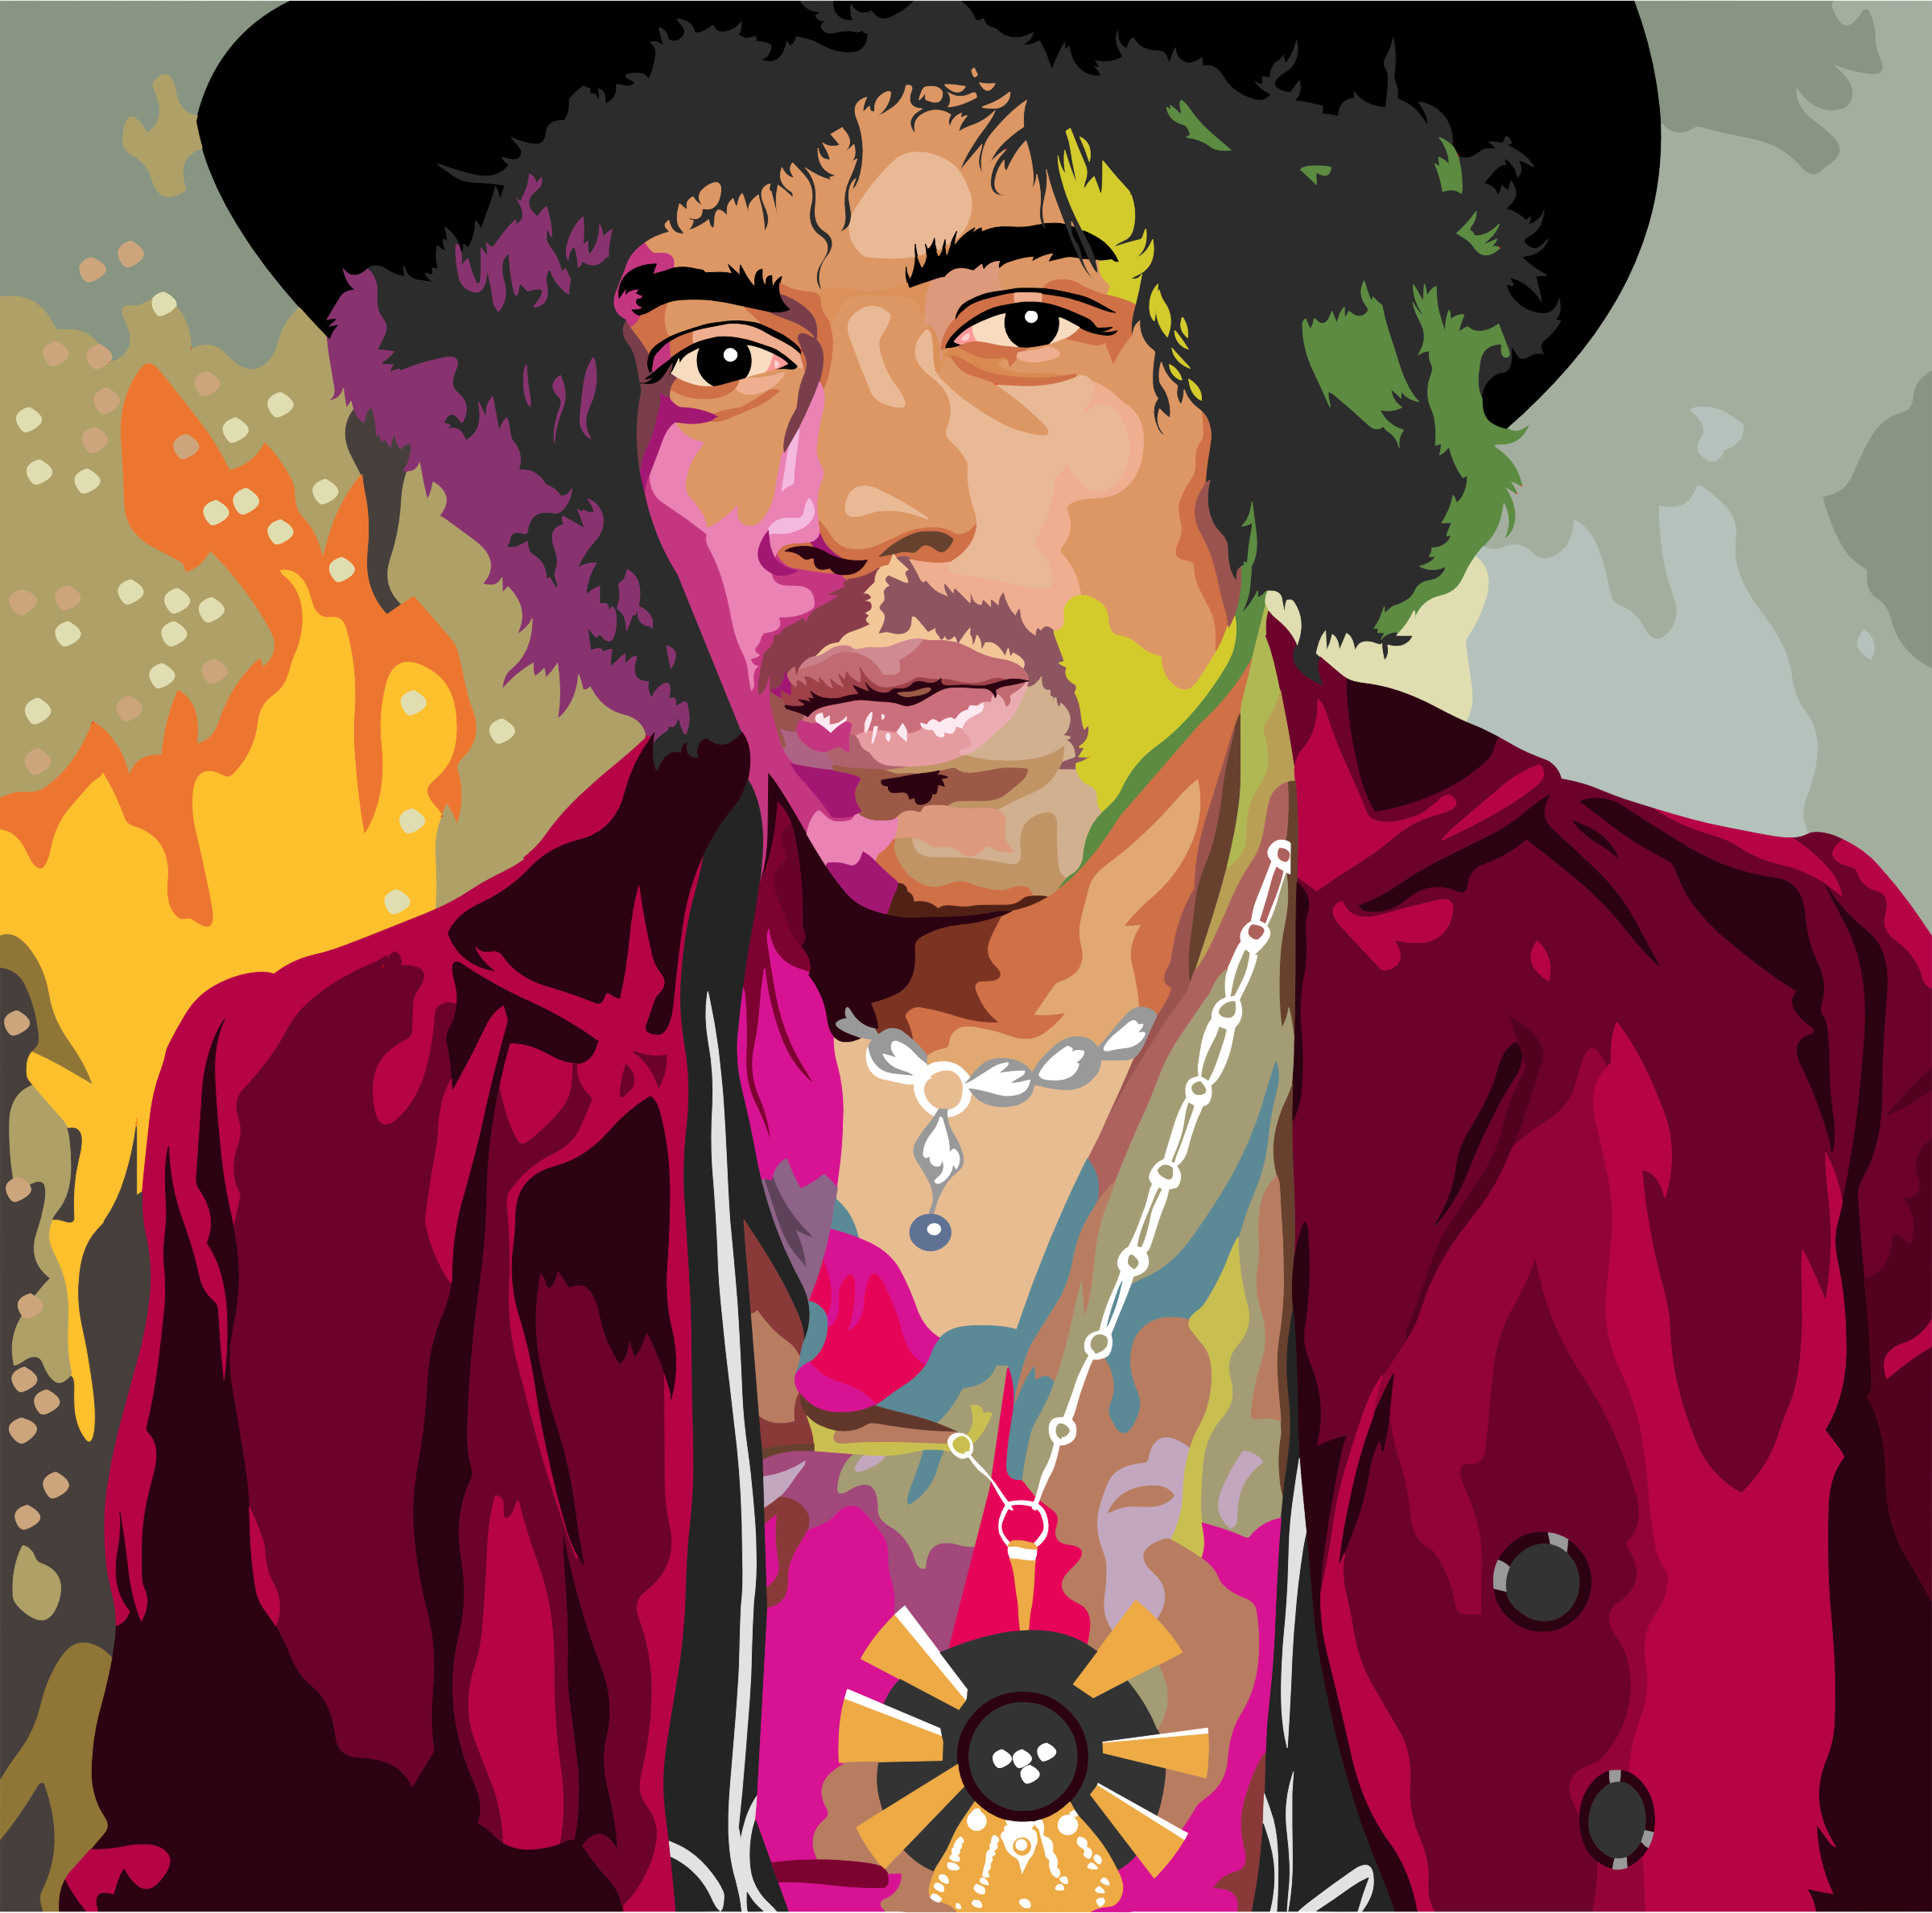 clipart colorful jimi hendrix portrait by heblo Cartoon Man clip art cartoon people asking questions